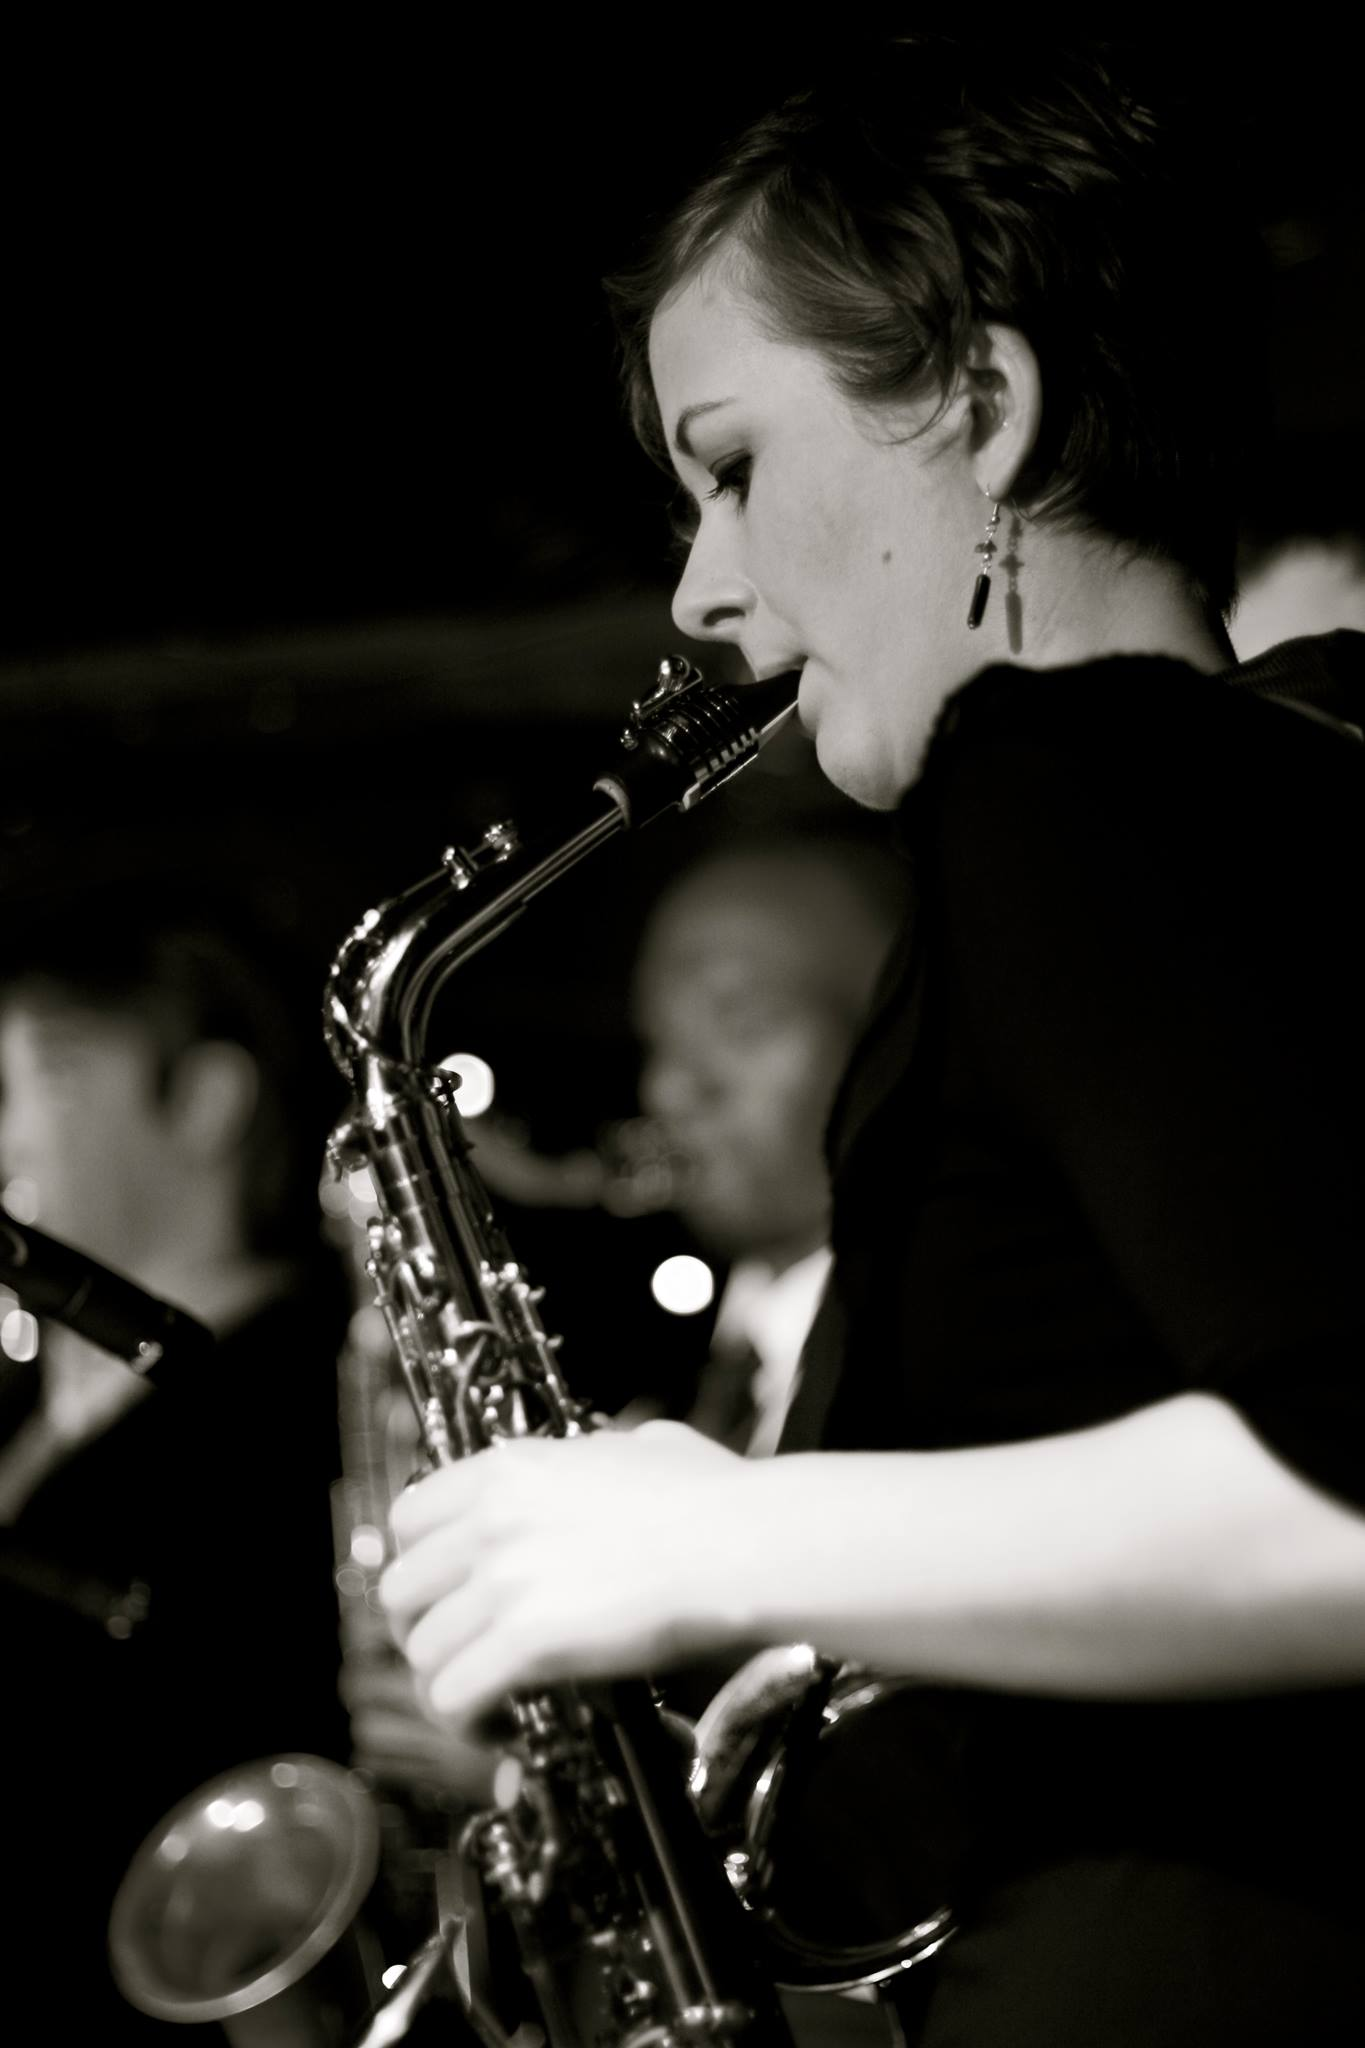 Black and white image of a woman playing a saxophone